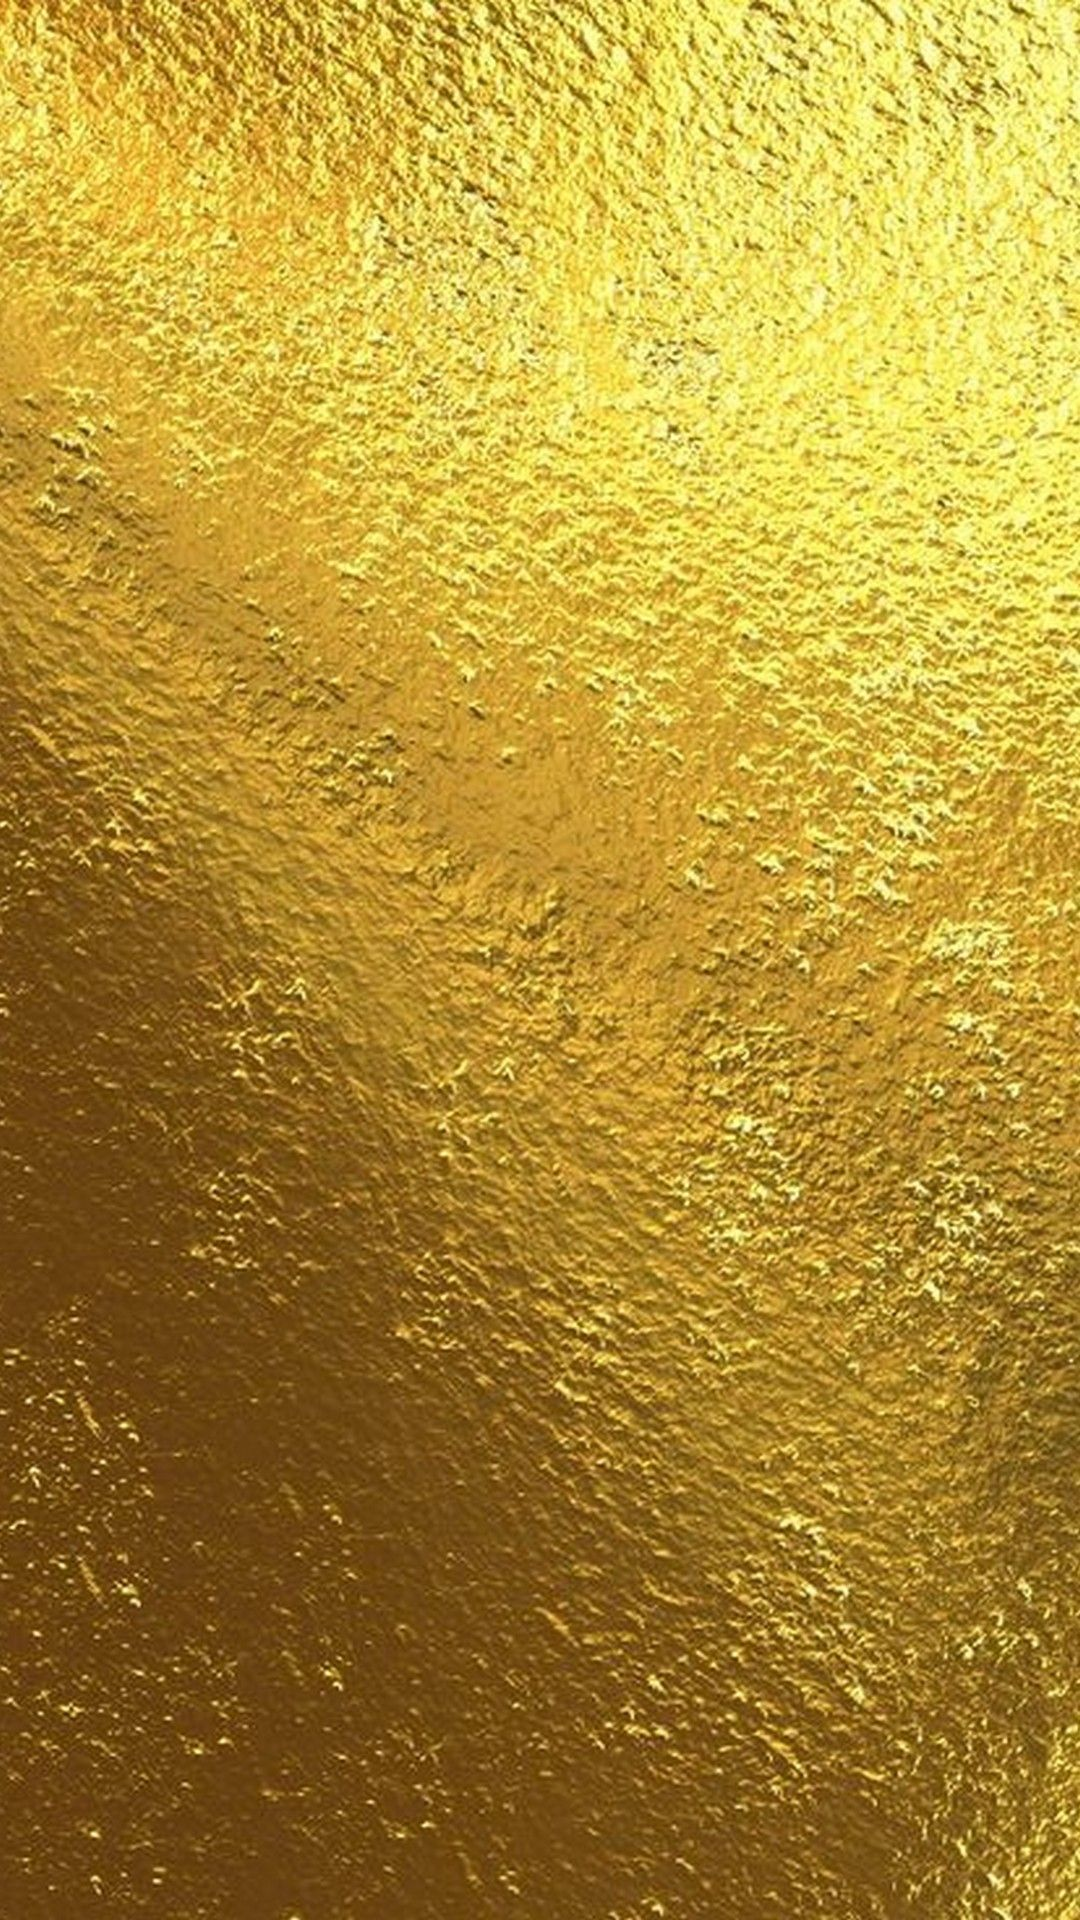 Android Wallpaper Hd Gold Best Android Wallpapers Gold Wallpaper Android Gold Wallpaper Hd Gold Wallpaper Background